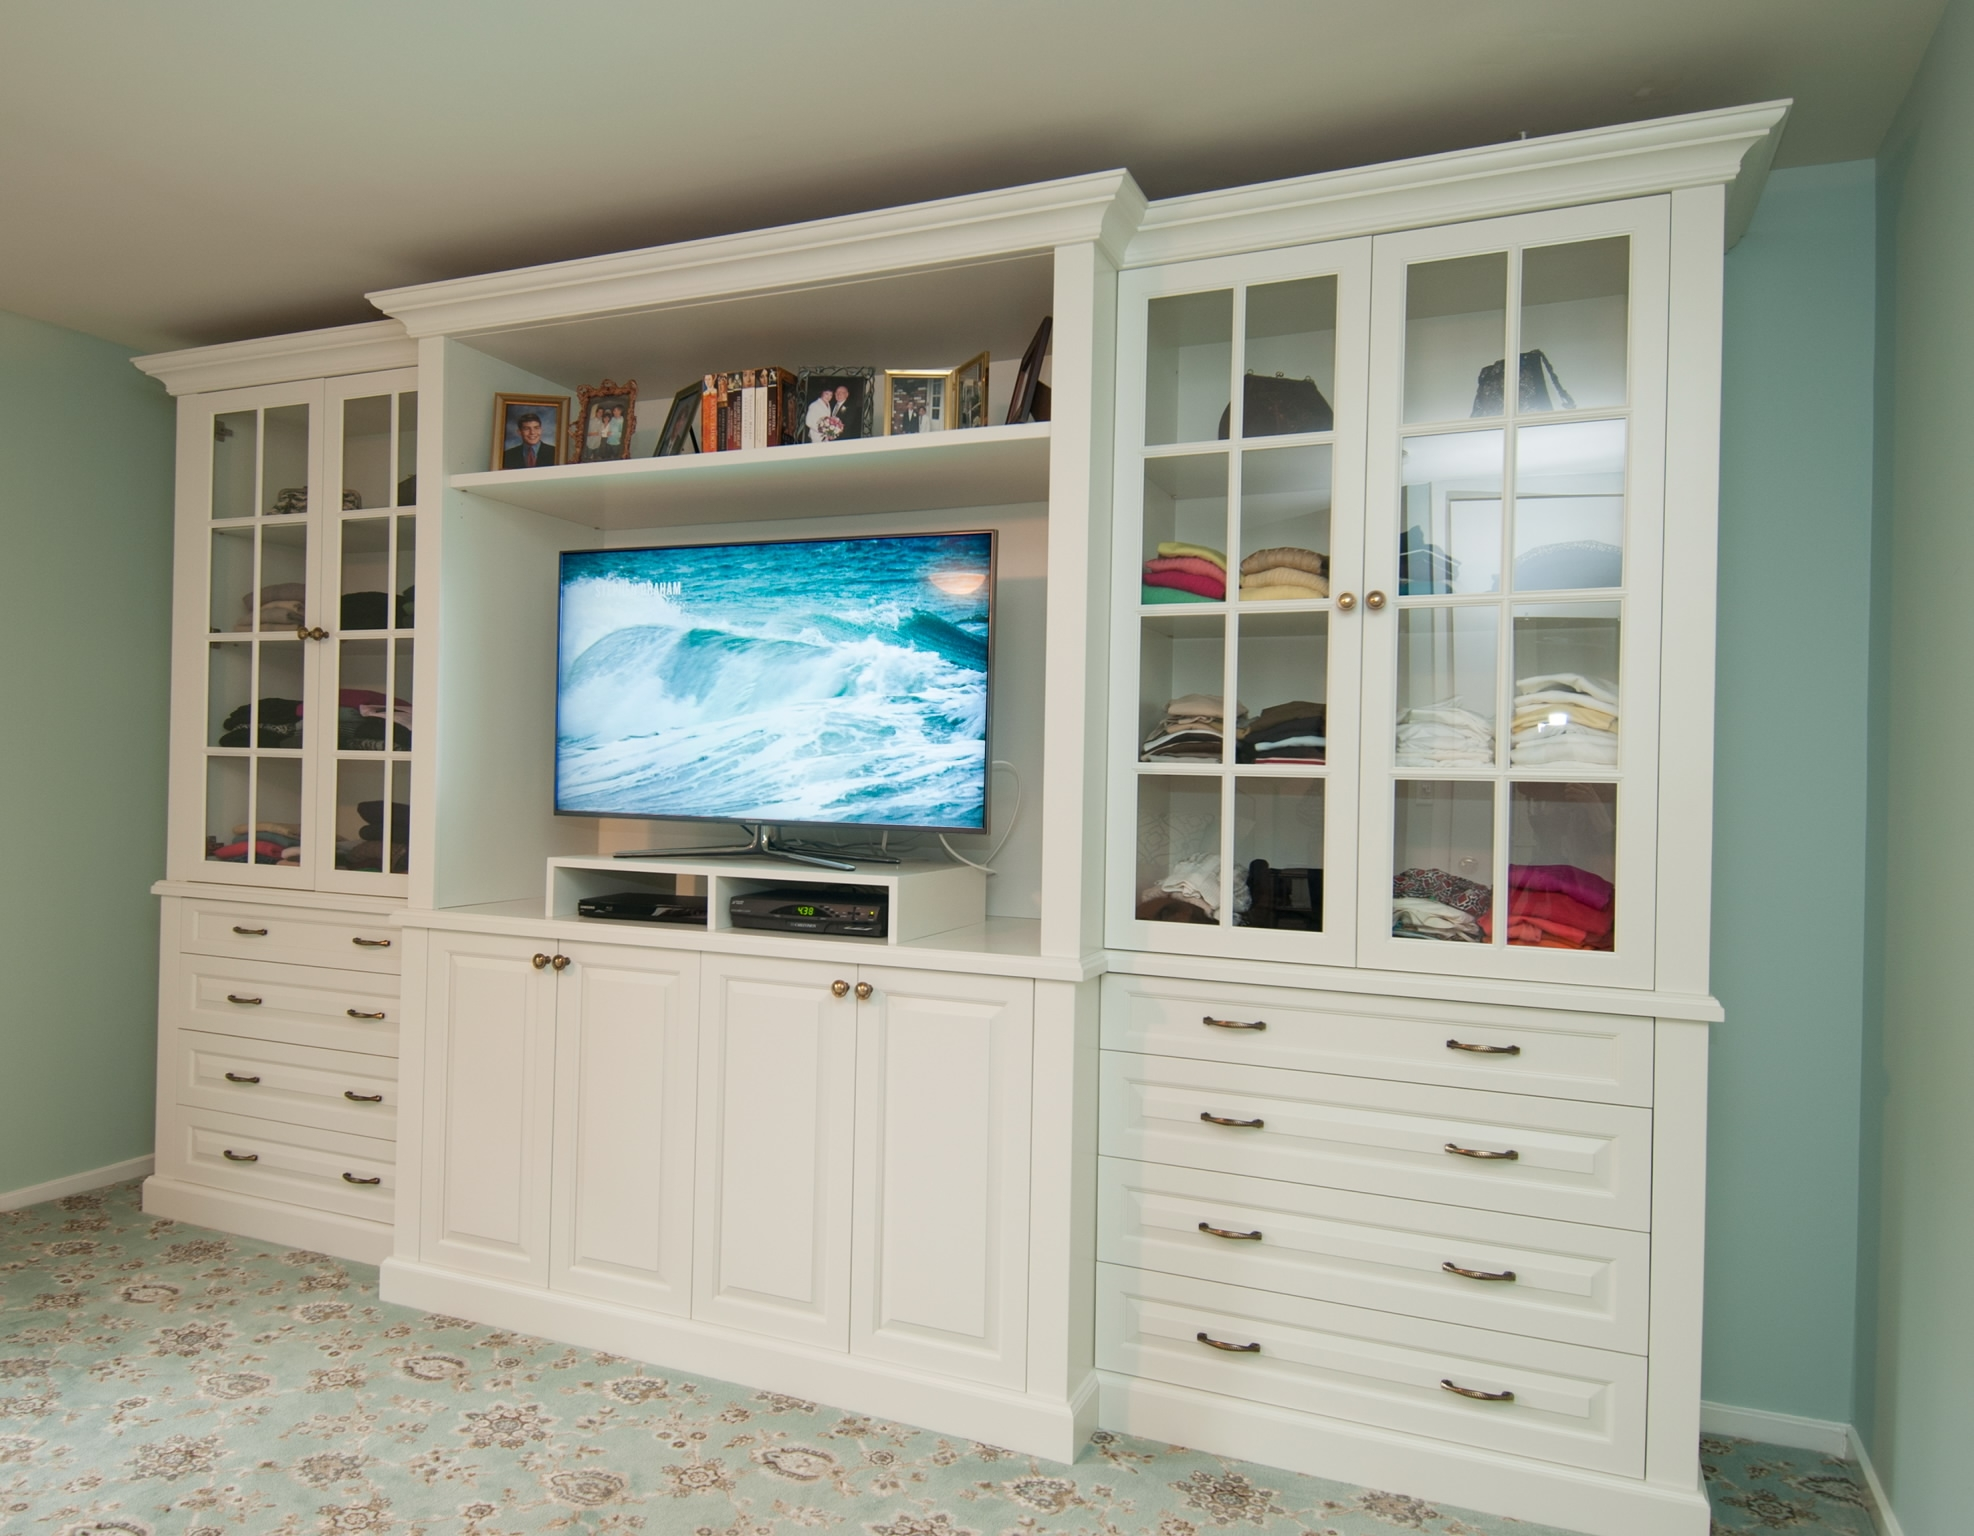 Tv Stand Dresser And Display Shelves Combination Creates Elegant With Regard To Dresser And Bookcase Combo (#15 of 15)